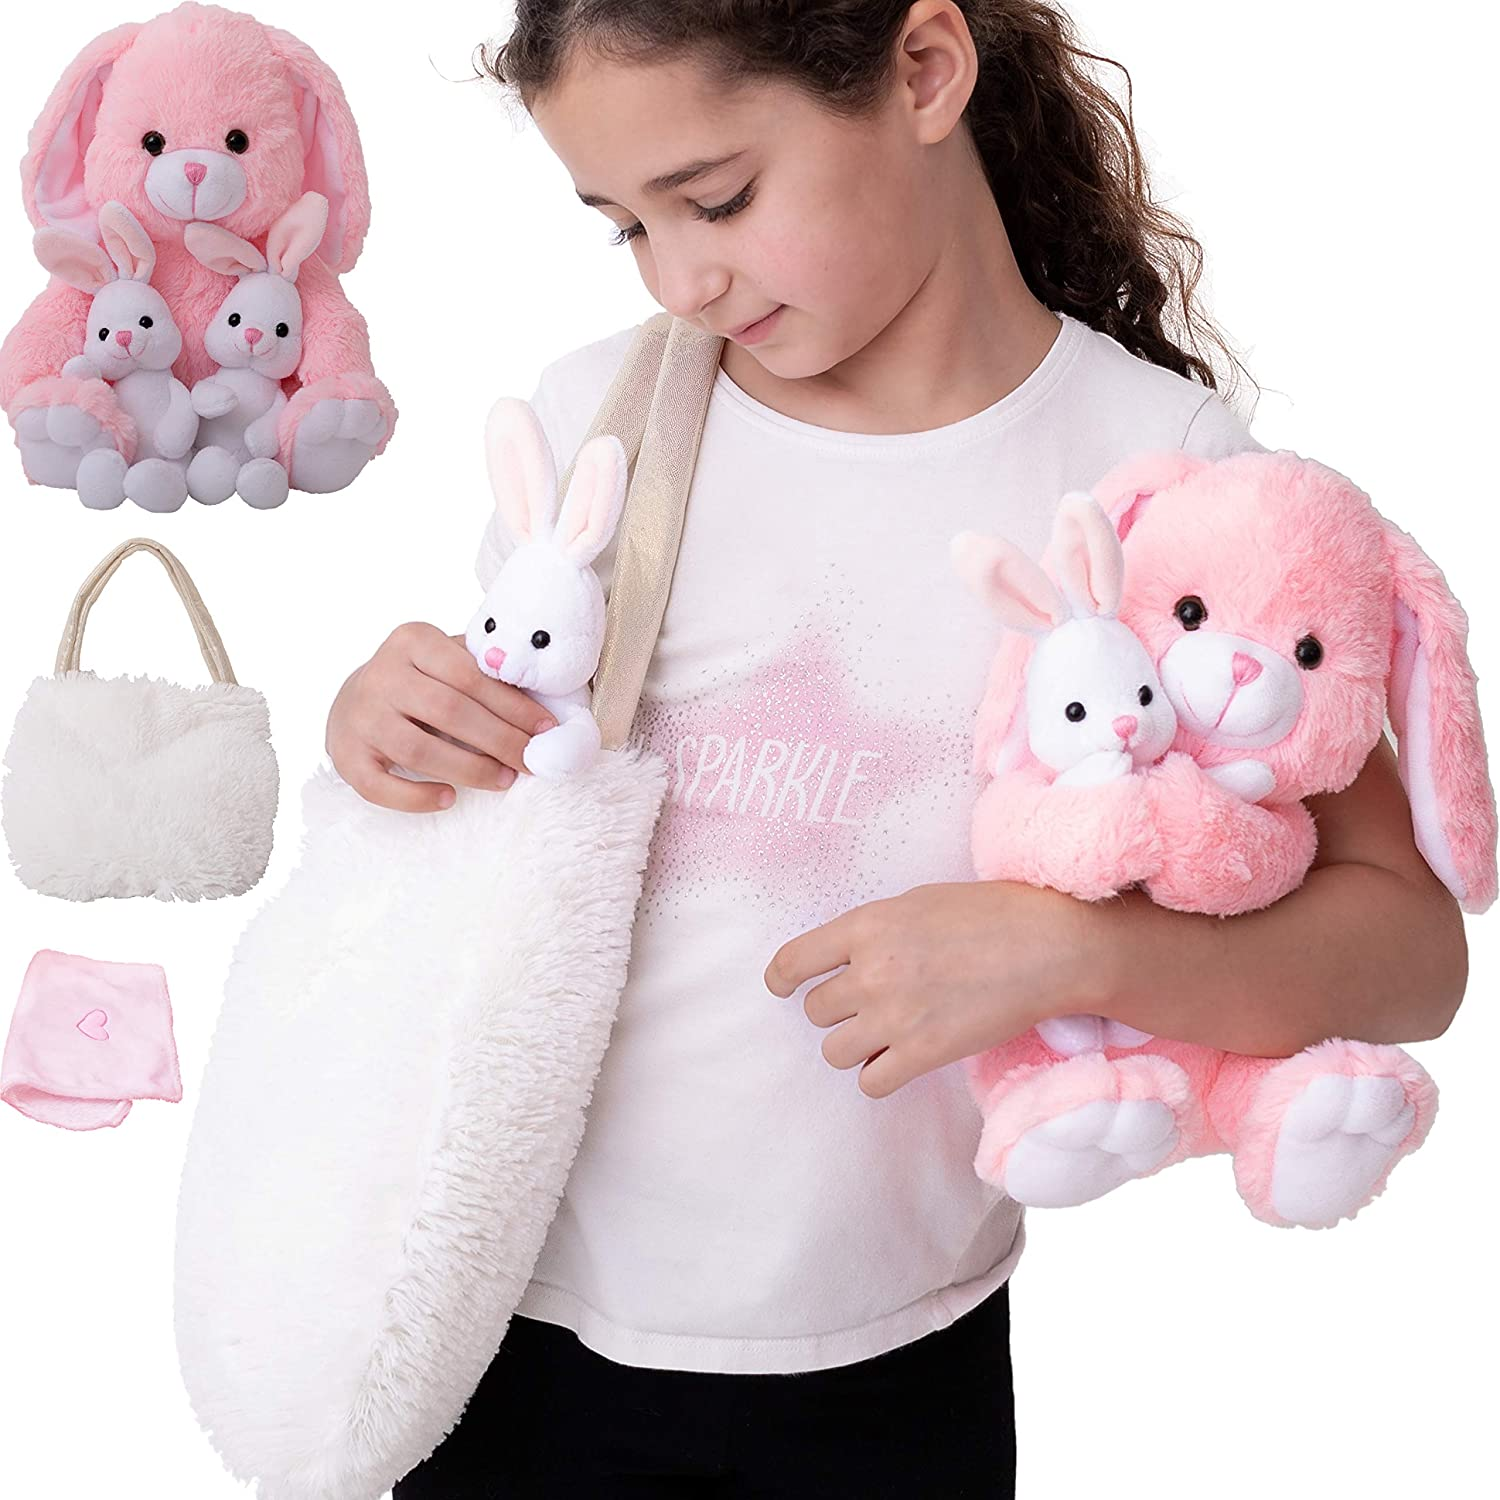 Max 79% OFF Bunny Toy for Girls 5 Pcs Set. Mommy XL Luxury goods 2 Rabbit Toys Fur Baby